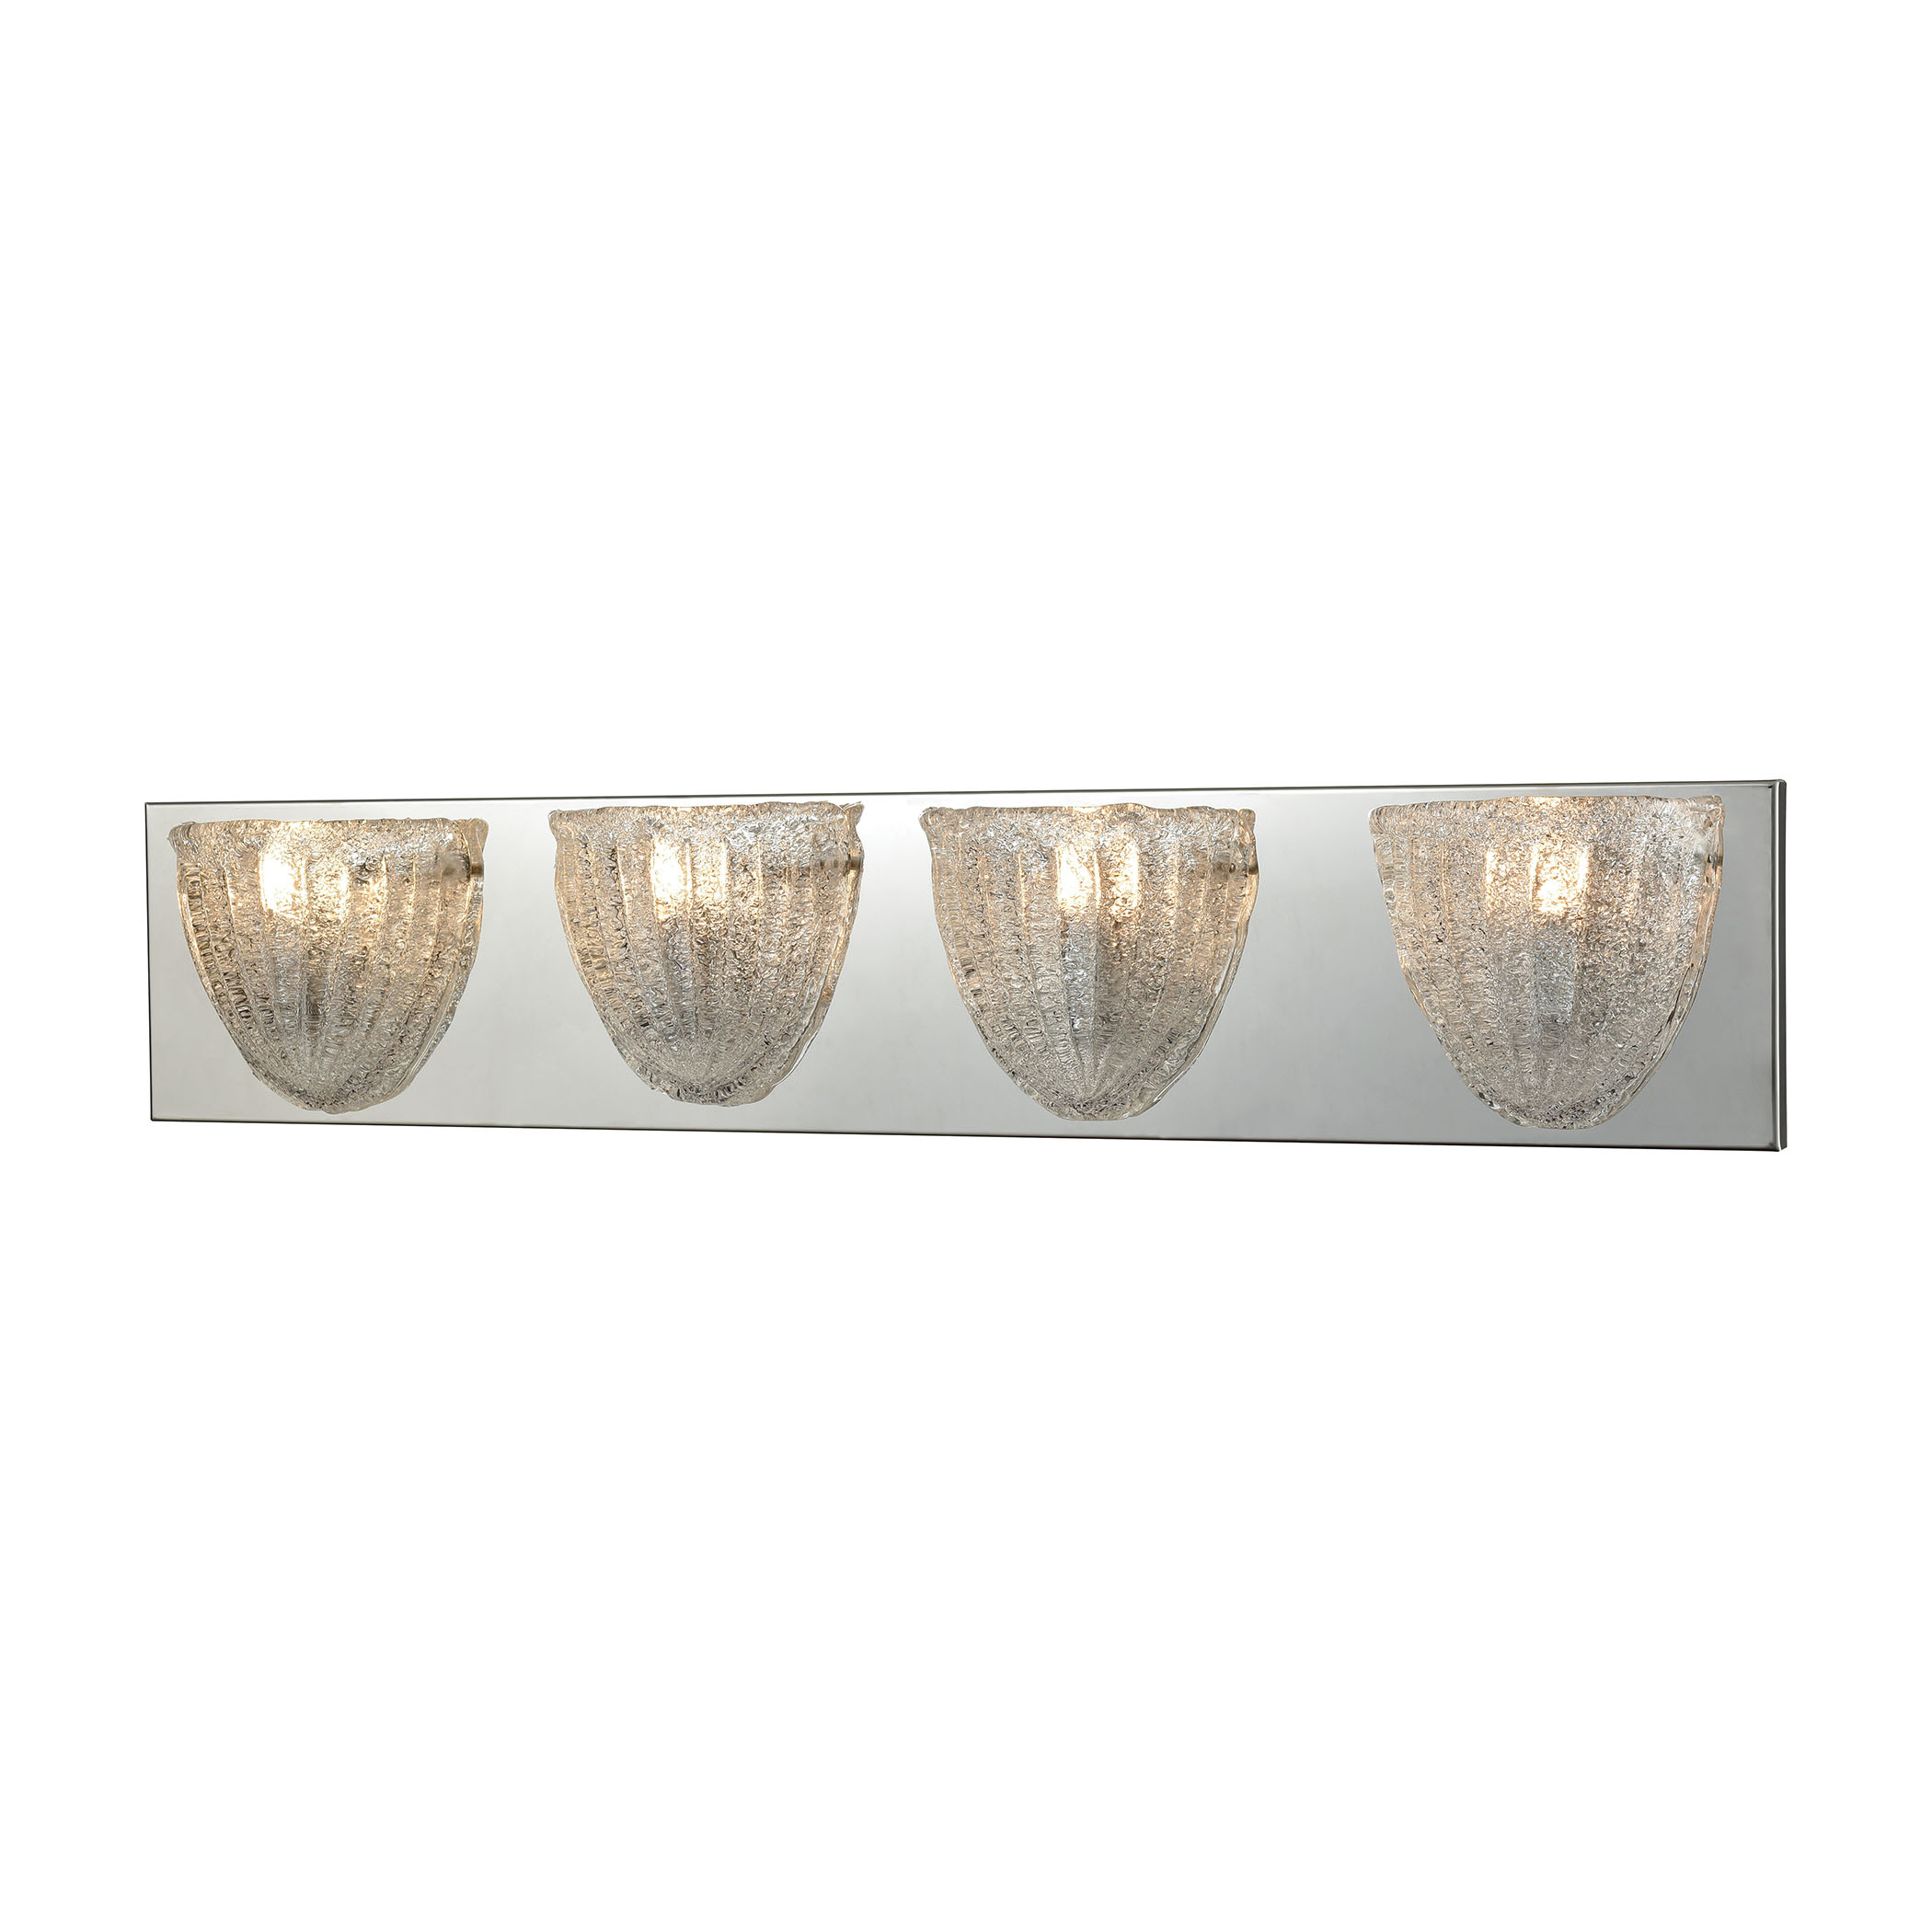 Verannis 4 Light Vanity in Polished Chrome with Hand-Formed Clear Sugar Glass